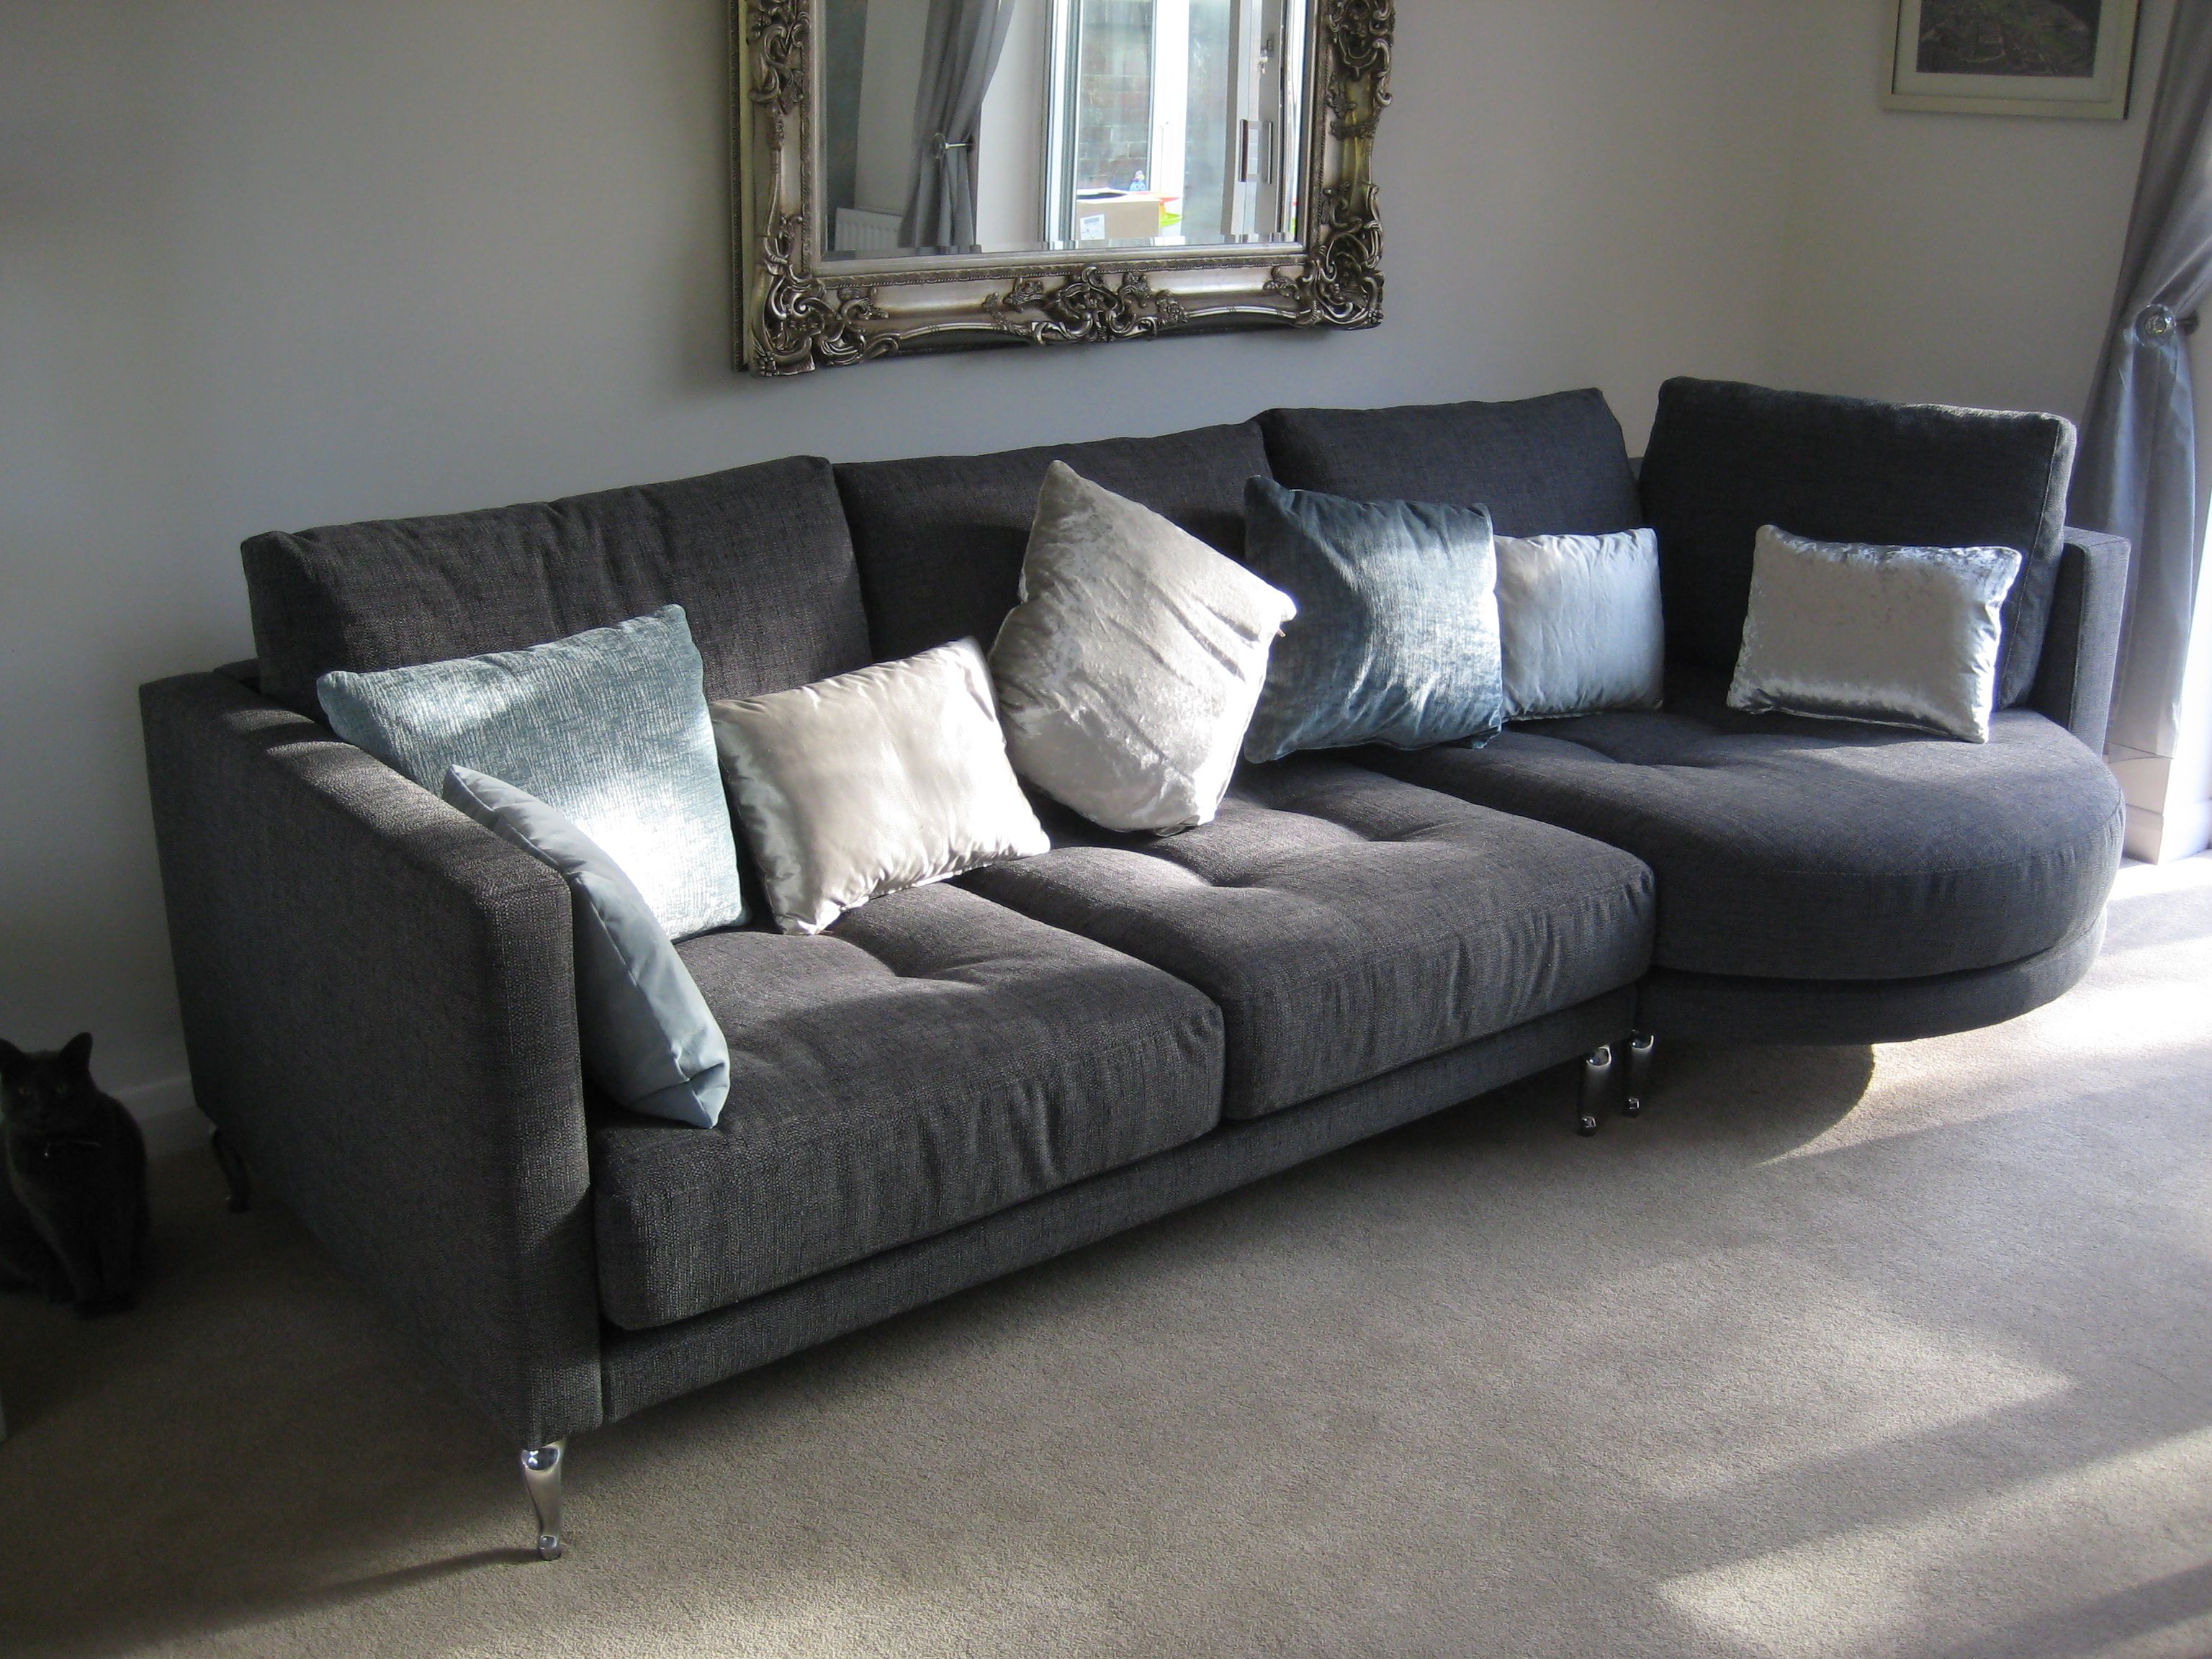 Our unusual rounded chaise sofa arrangement Ole! May be